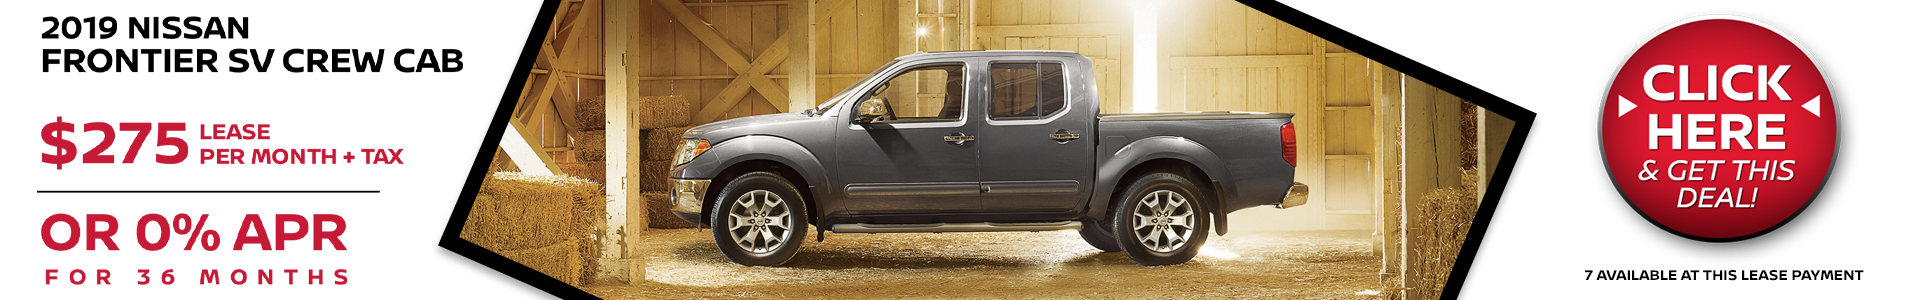 Mossy Nissan - Nissan Frontier $275 Lease